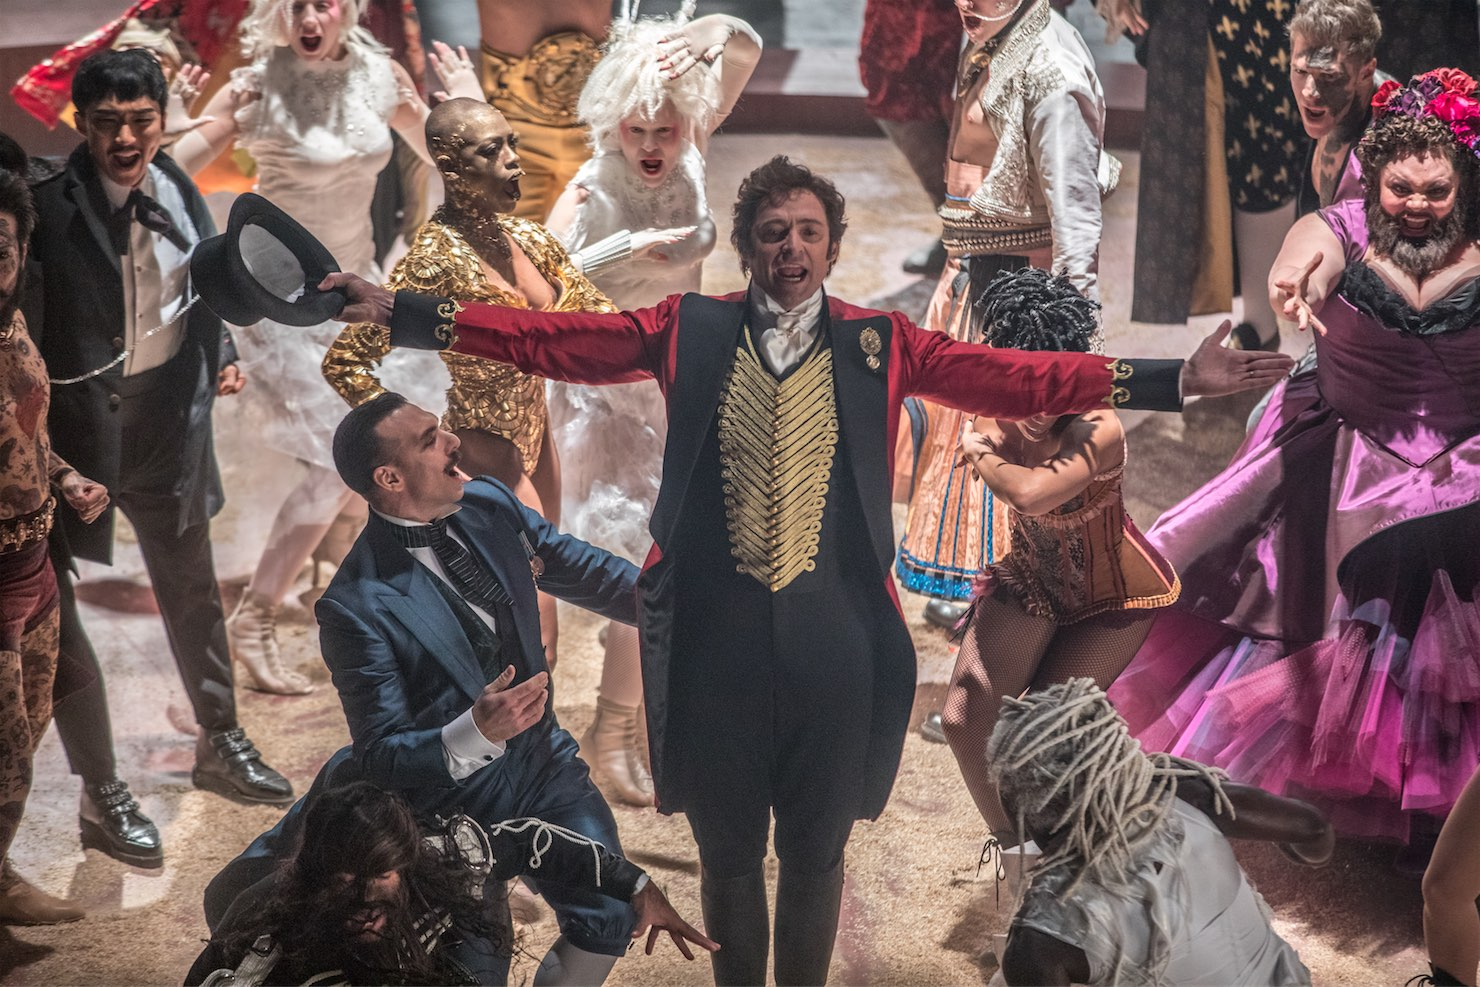 Fantastic New Trailer For Hugh Jackman's The Greatest Showman